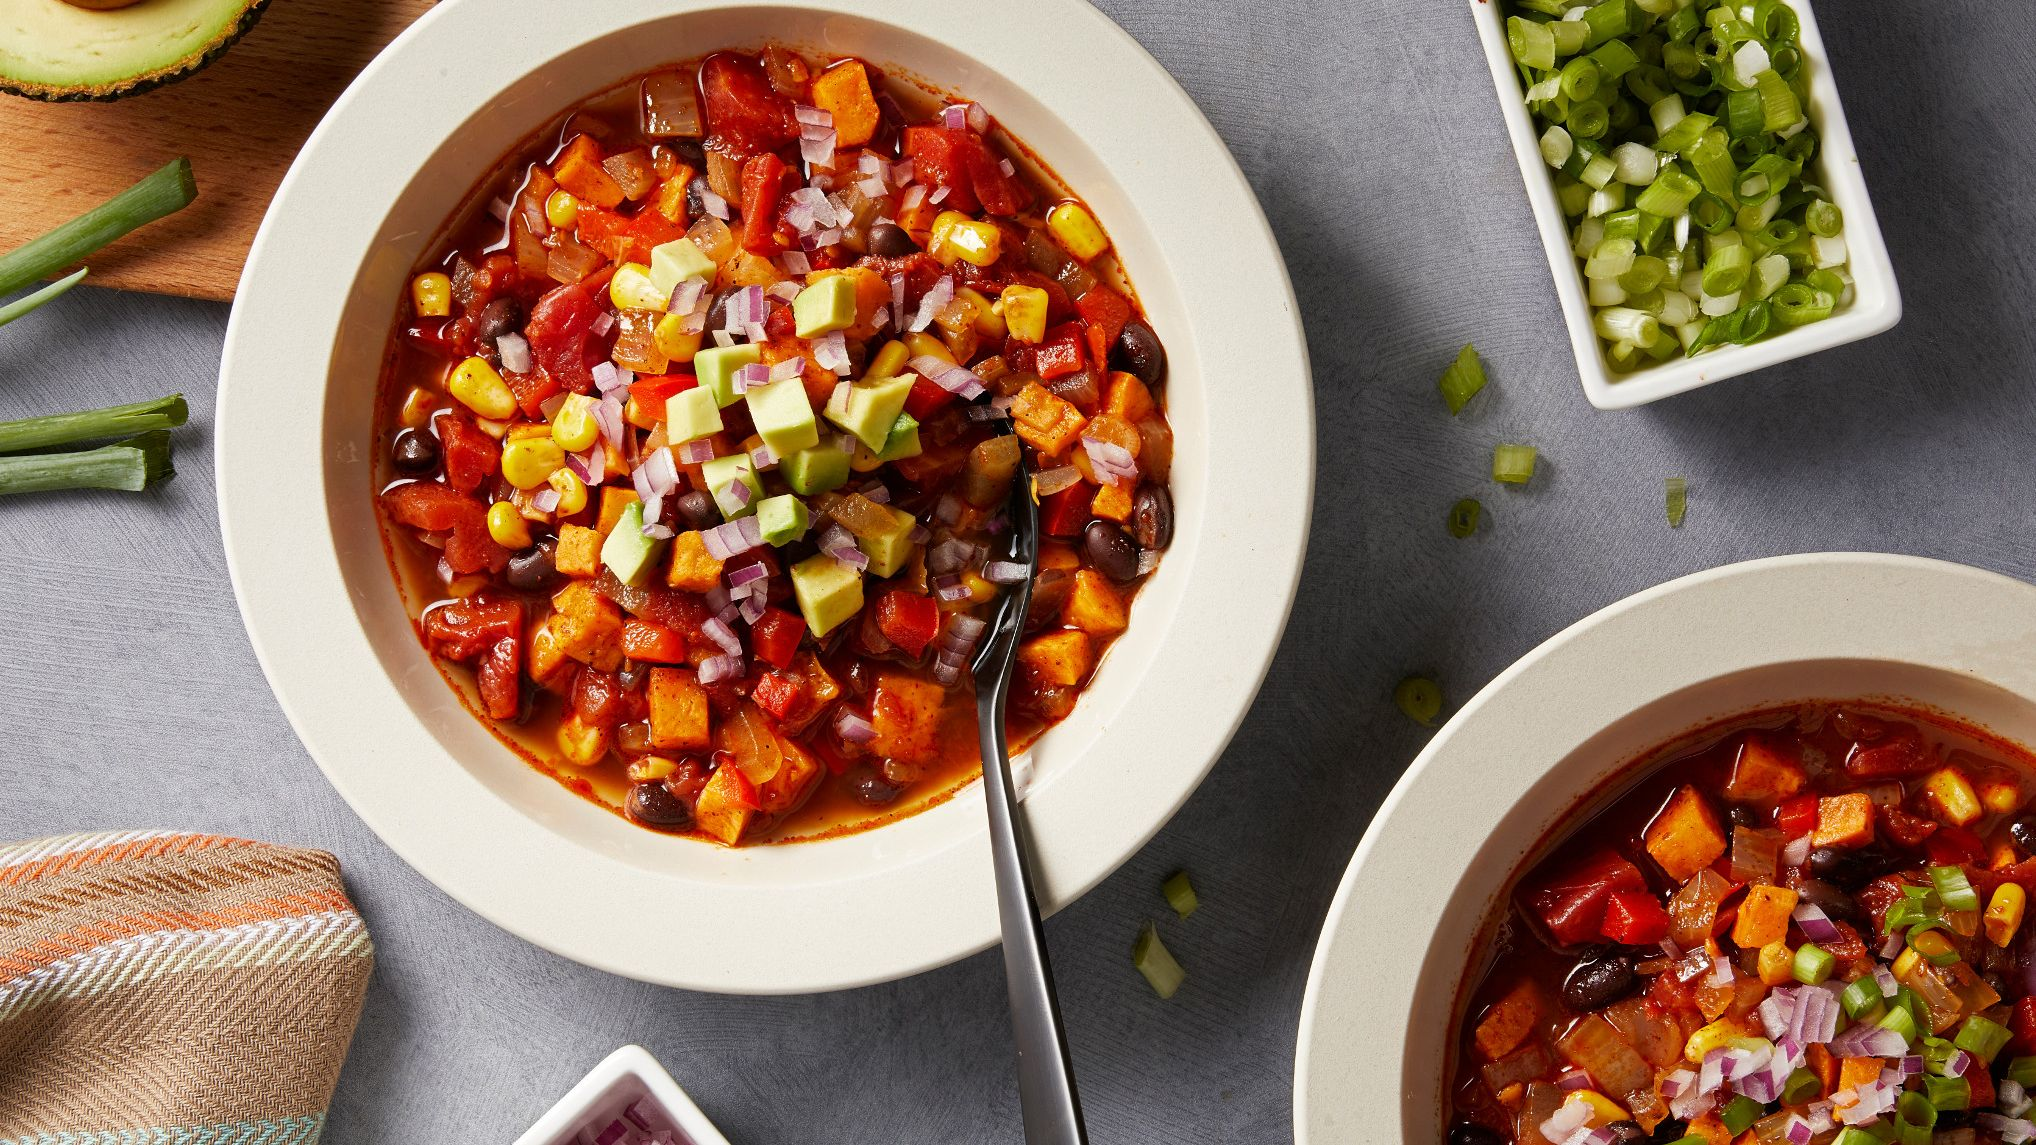 McCormick Instant Pot® Vegetarian Chili